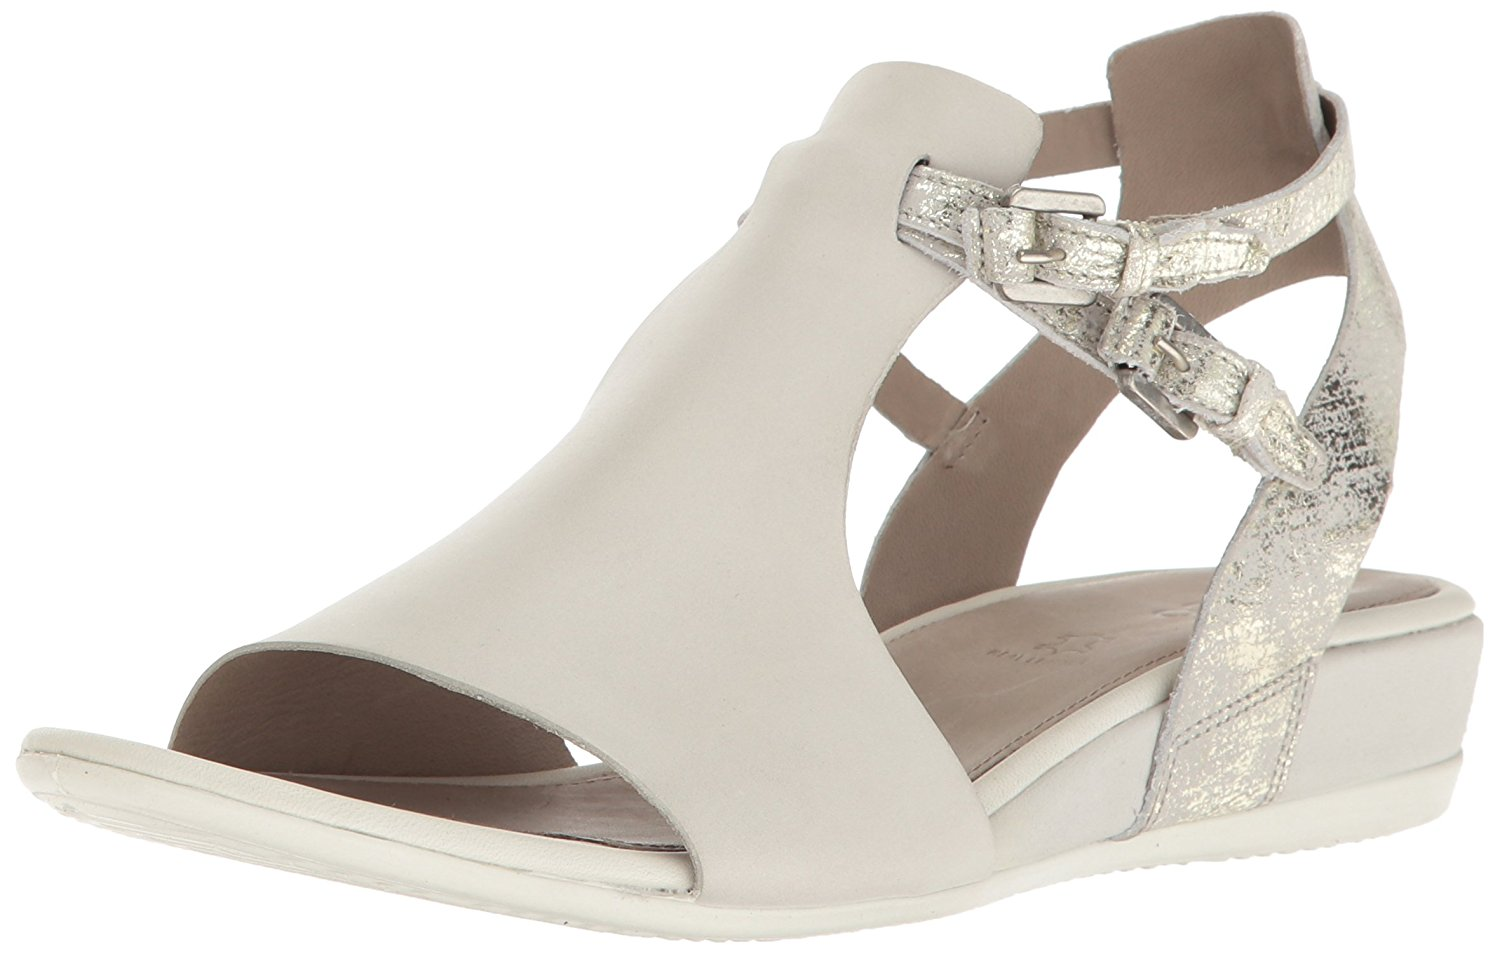 ECCO Womens 262163 Open Toe Casual Ankle Strap, Shadow White Gravel, Size 6.0 Kt